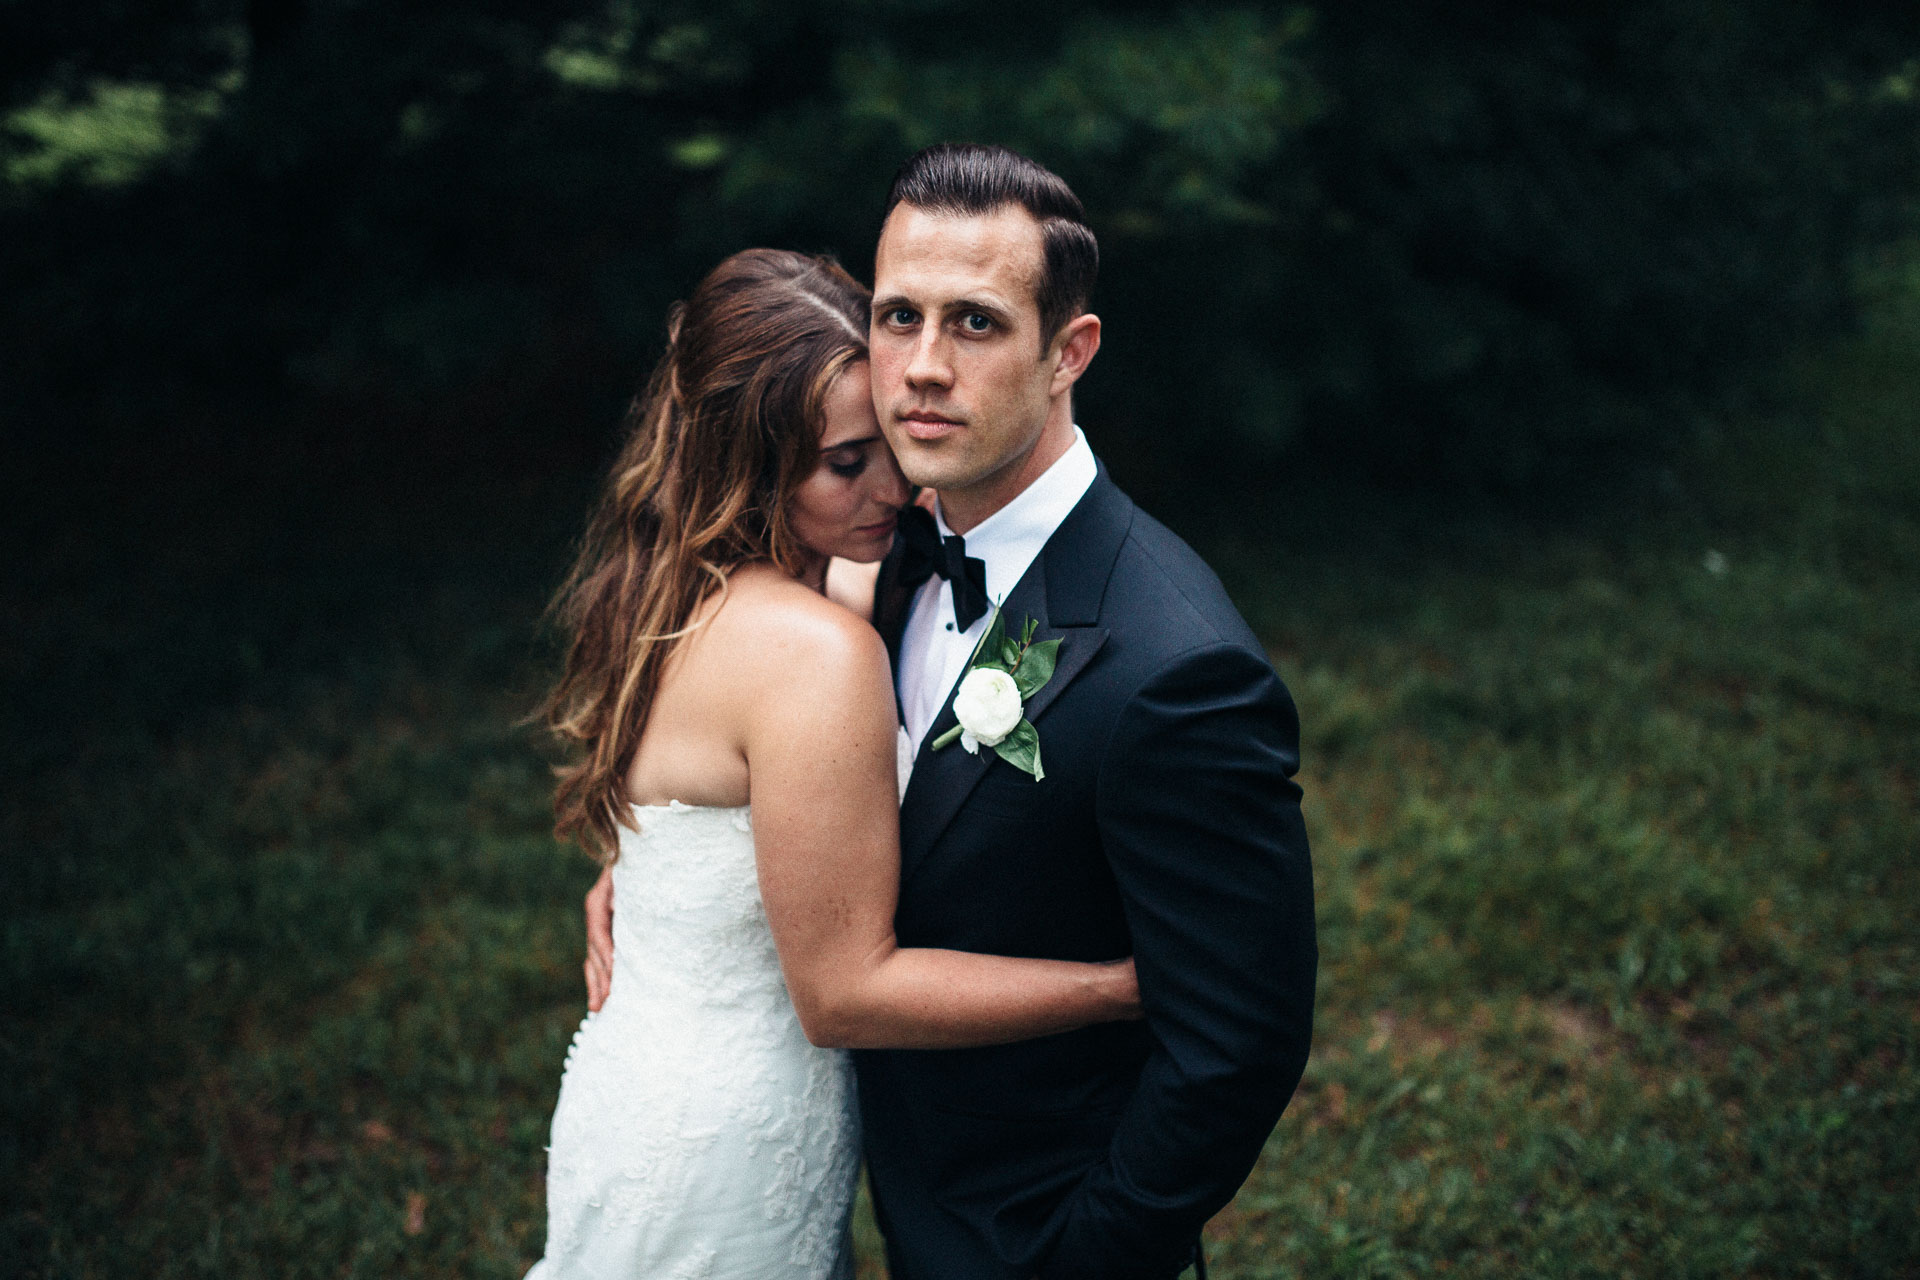 Shawna_Josh_Wedding_Easton_Maryland_JeanLaurentGaudy_120